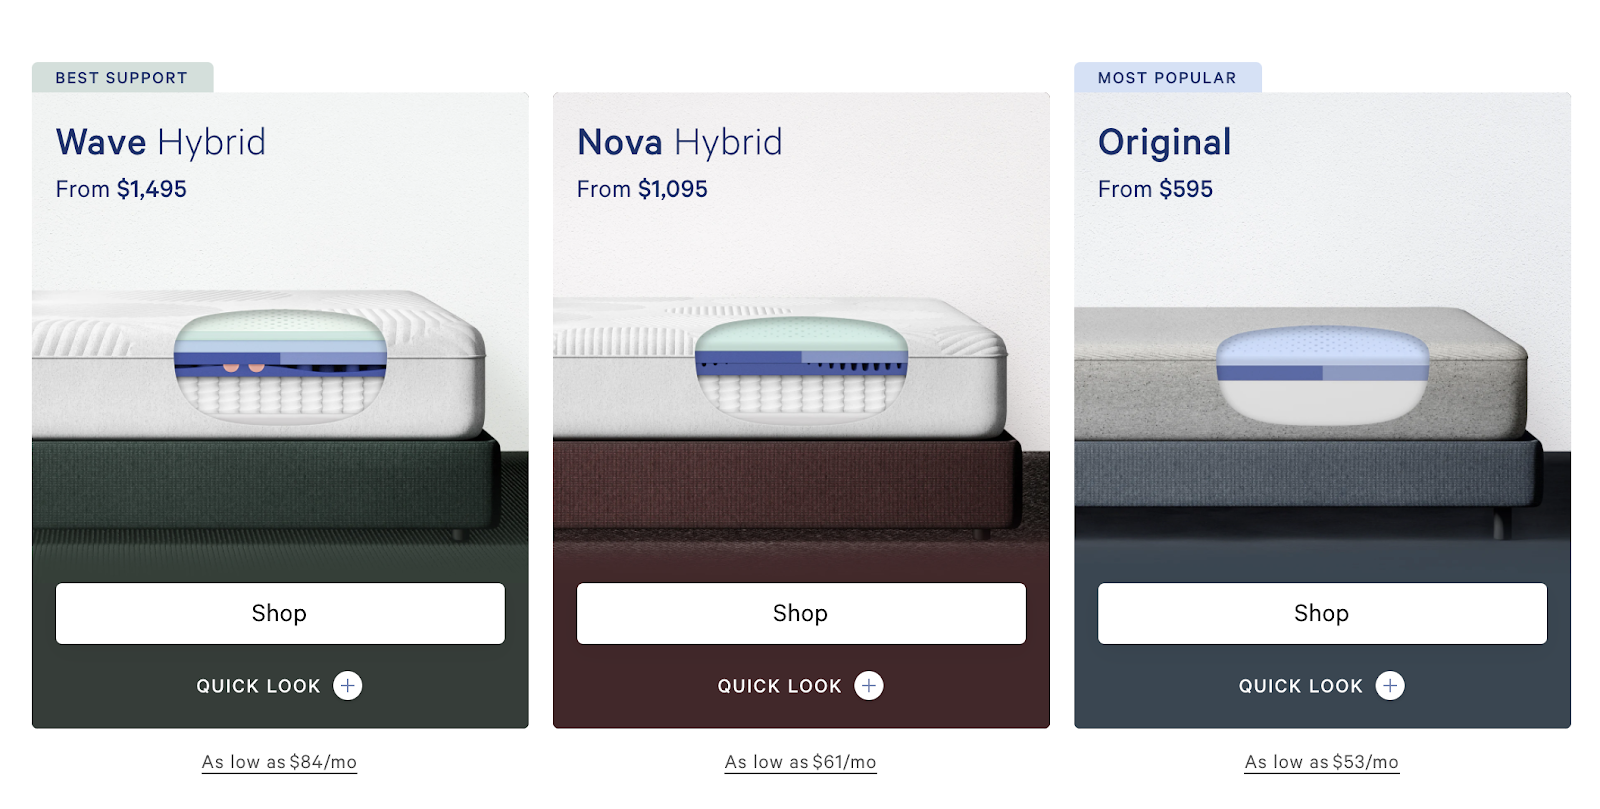 Casper Mattress Online Shopping Experience (Product Screenshots)